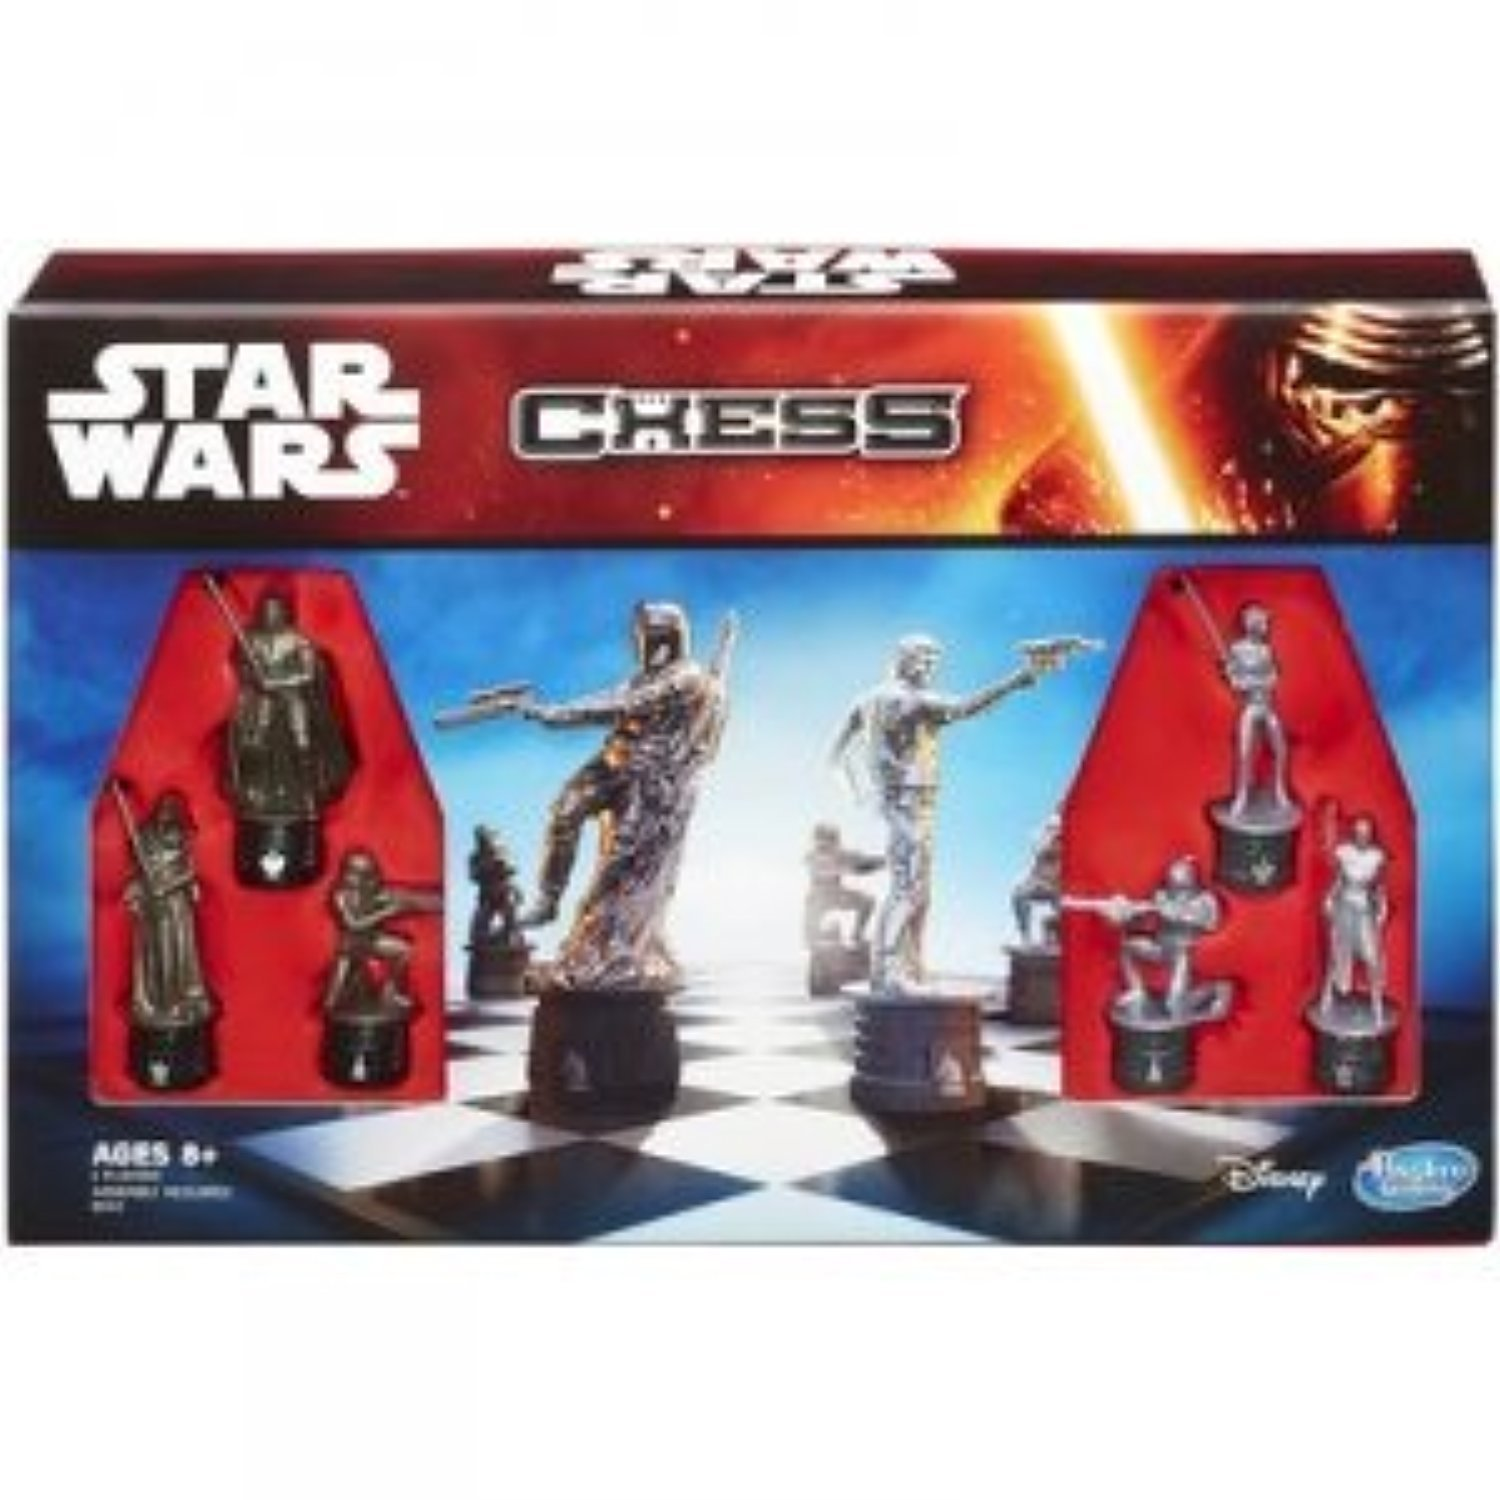 Star Wars Battle Chess Game, Pieces Includes Villains &